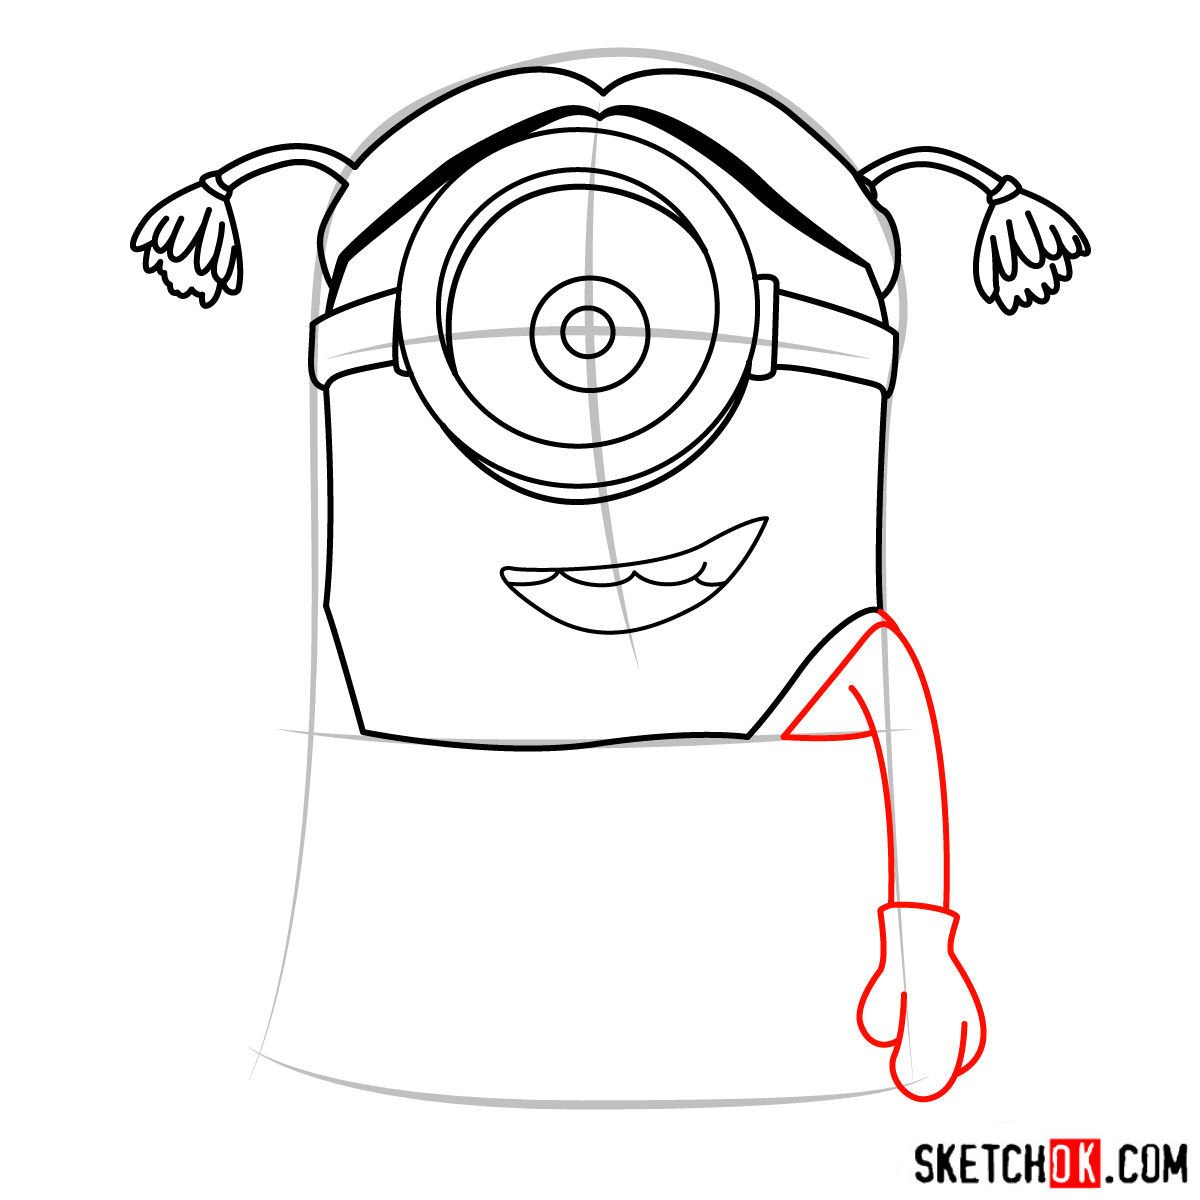 How to draw minion Stuart dressed as a girl - 